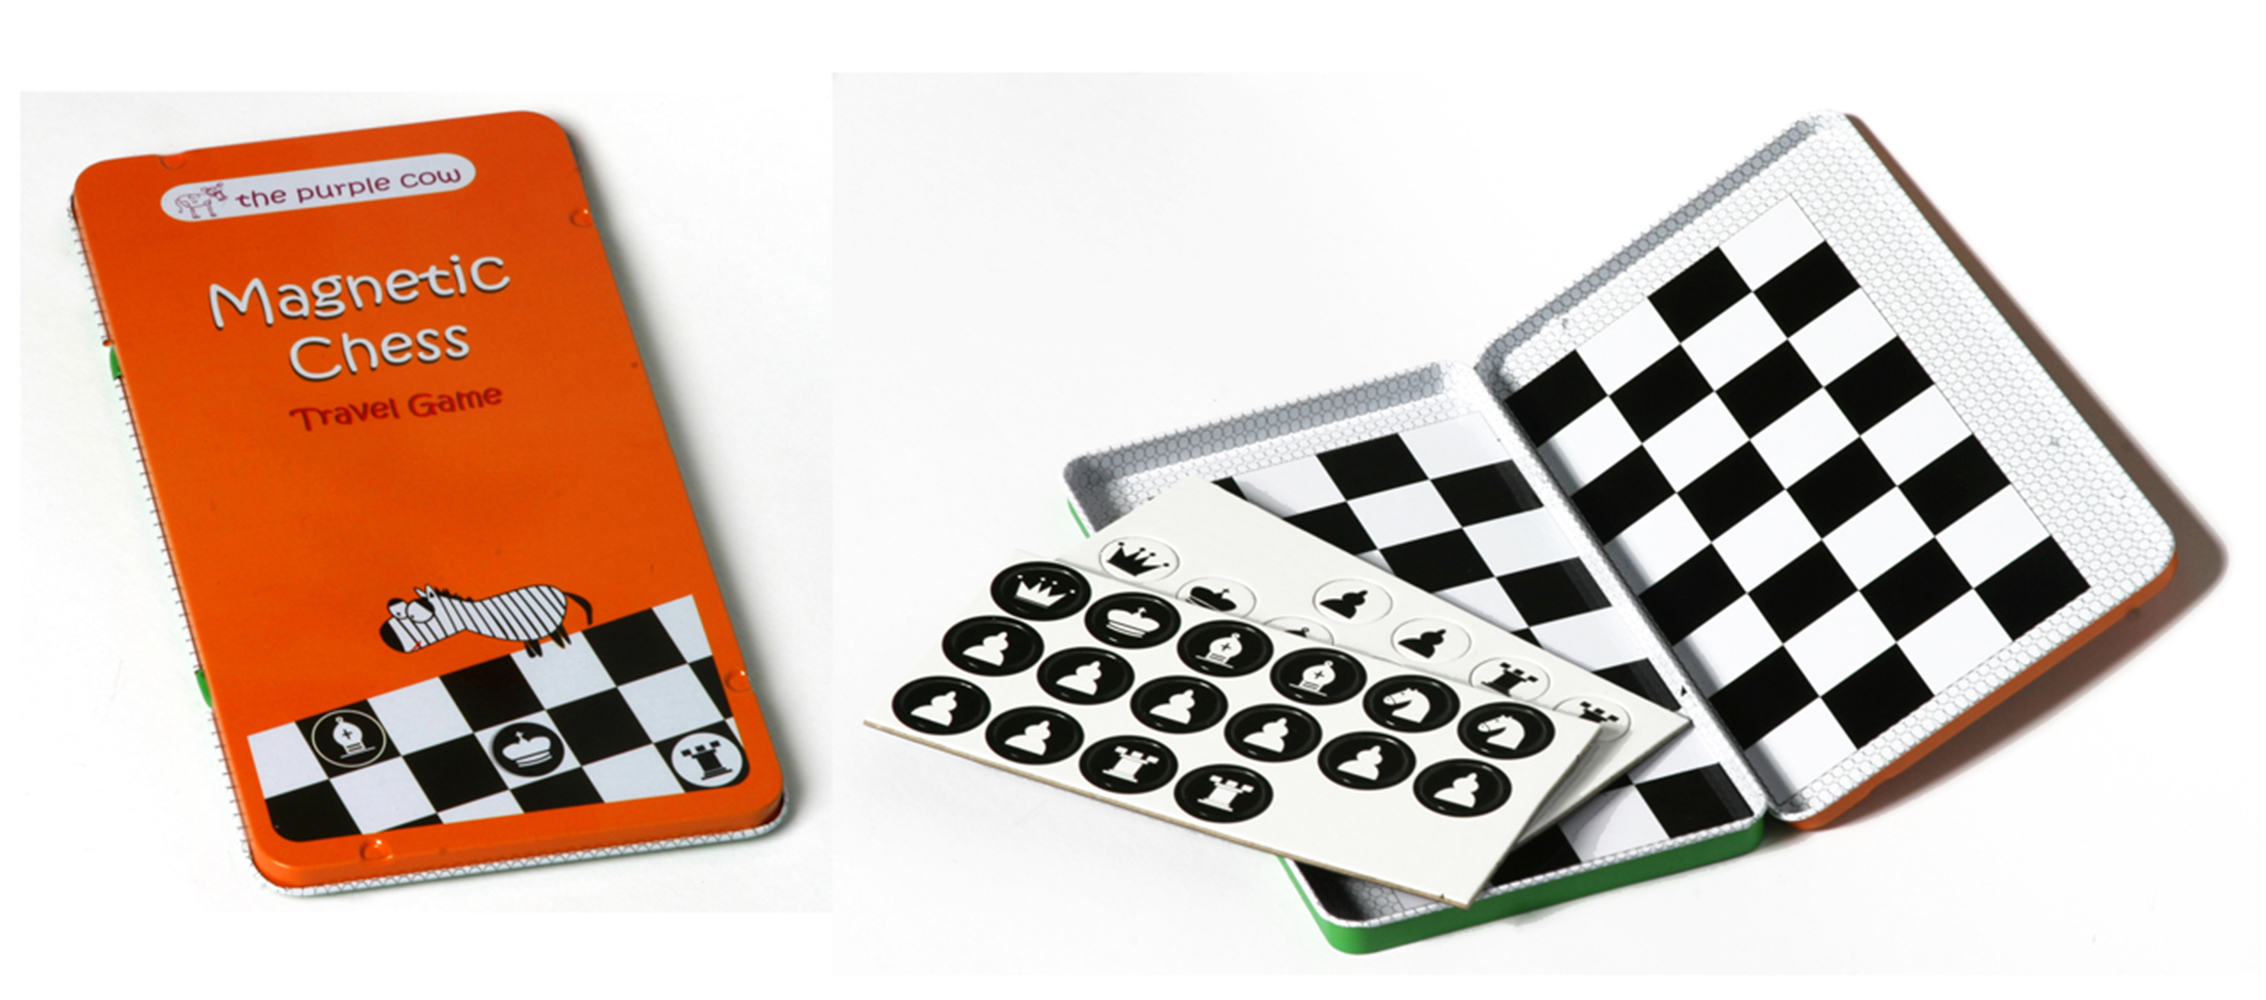 Magnetic Travel Game (Spiel), Chess